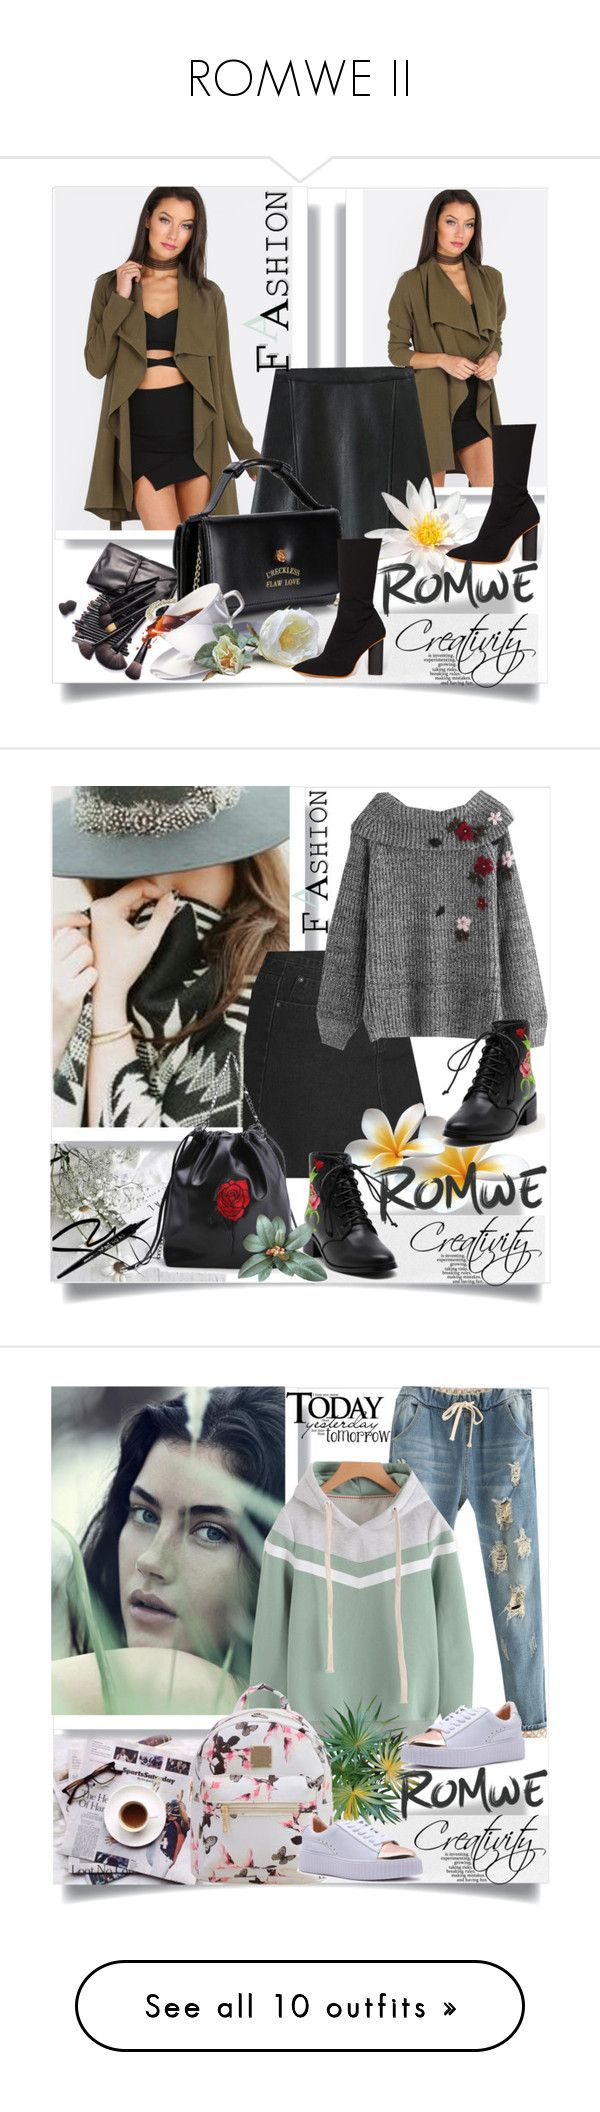 """ROMWE II"" by creativity30 ❤ liked on Polyvore featuring romwe, vintage, Dukes, Linda Farrow, Superdry, Bobbi Brown Cosmetics, LAQA & Co., A.J. Morgan, Max&Co. and Lipstick Queen"